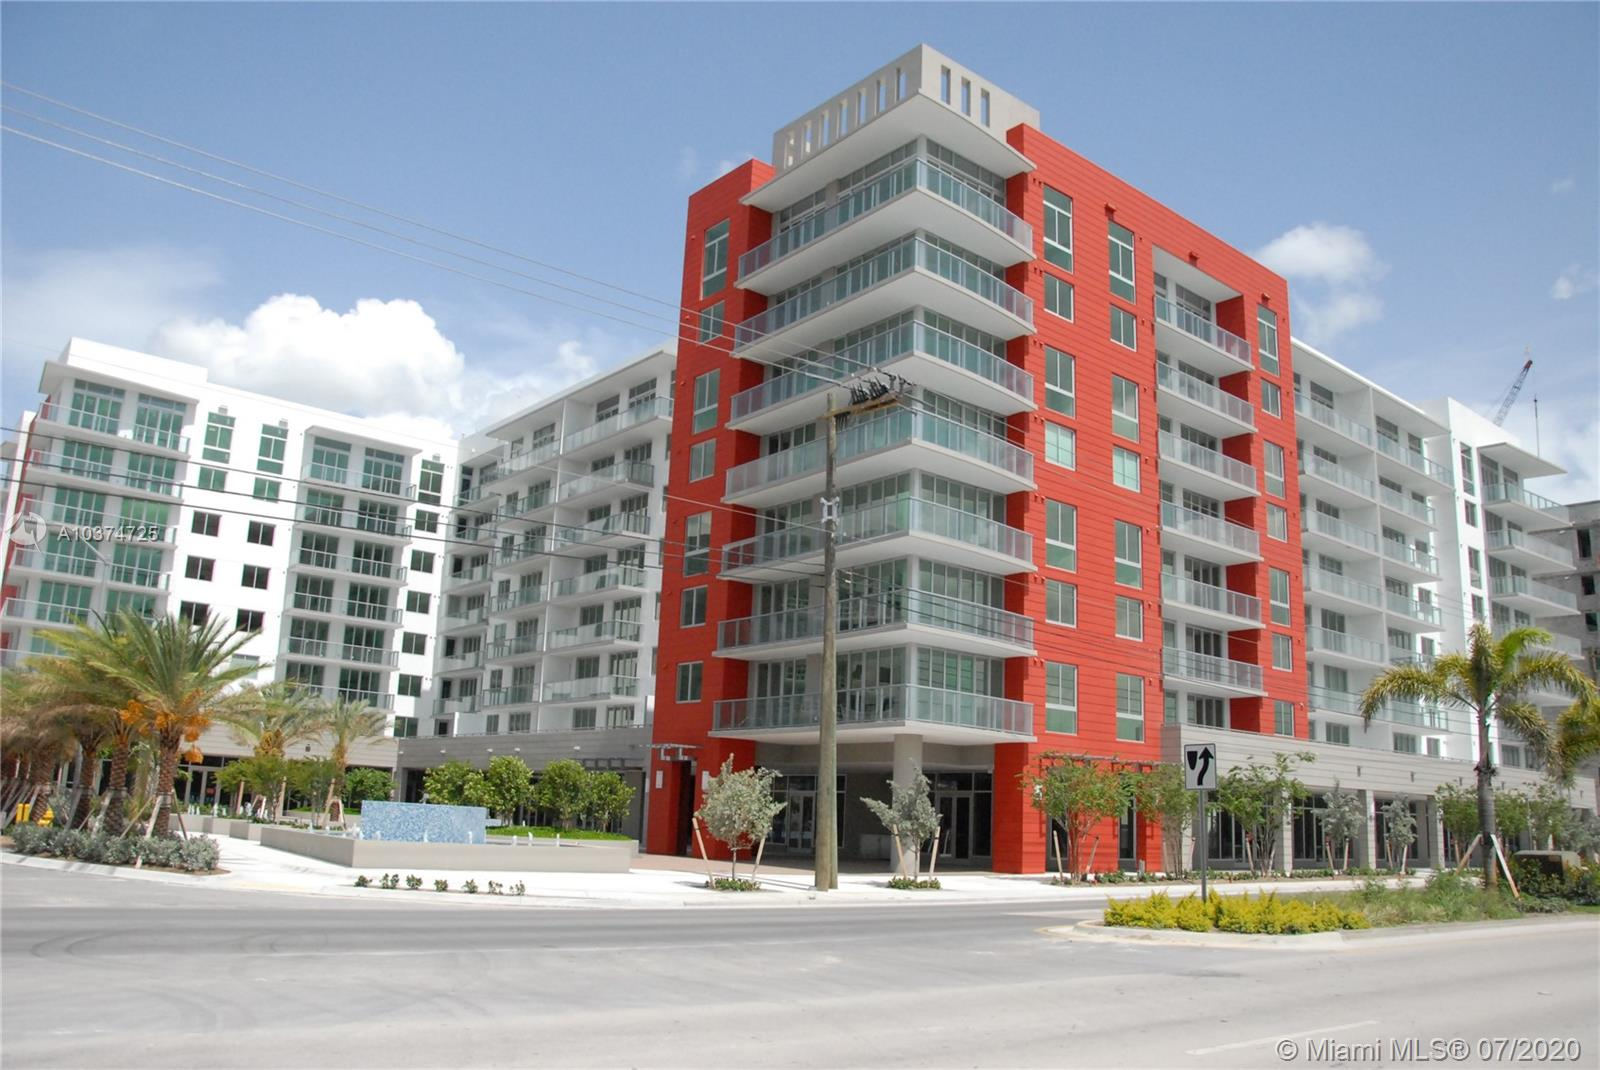 Midtown Doral - Building 2 #217 - 7751 NW 107th AVE #217, Doral, FL 33178